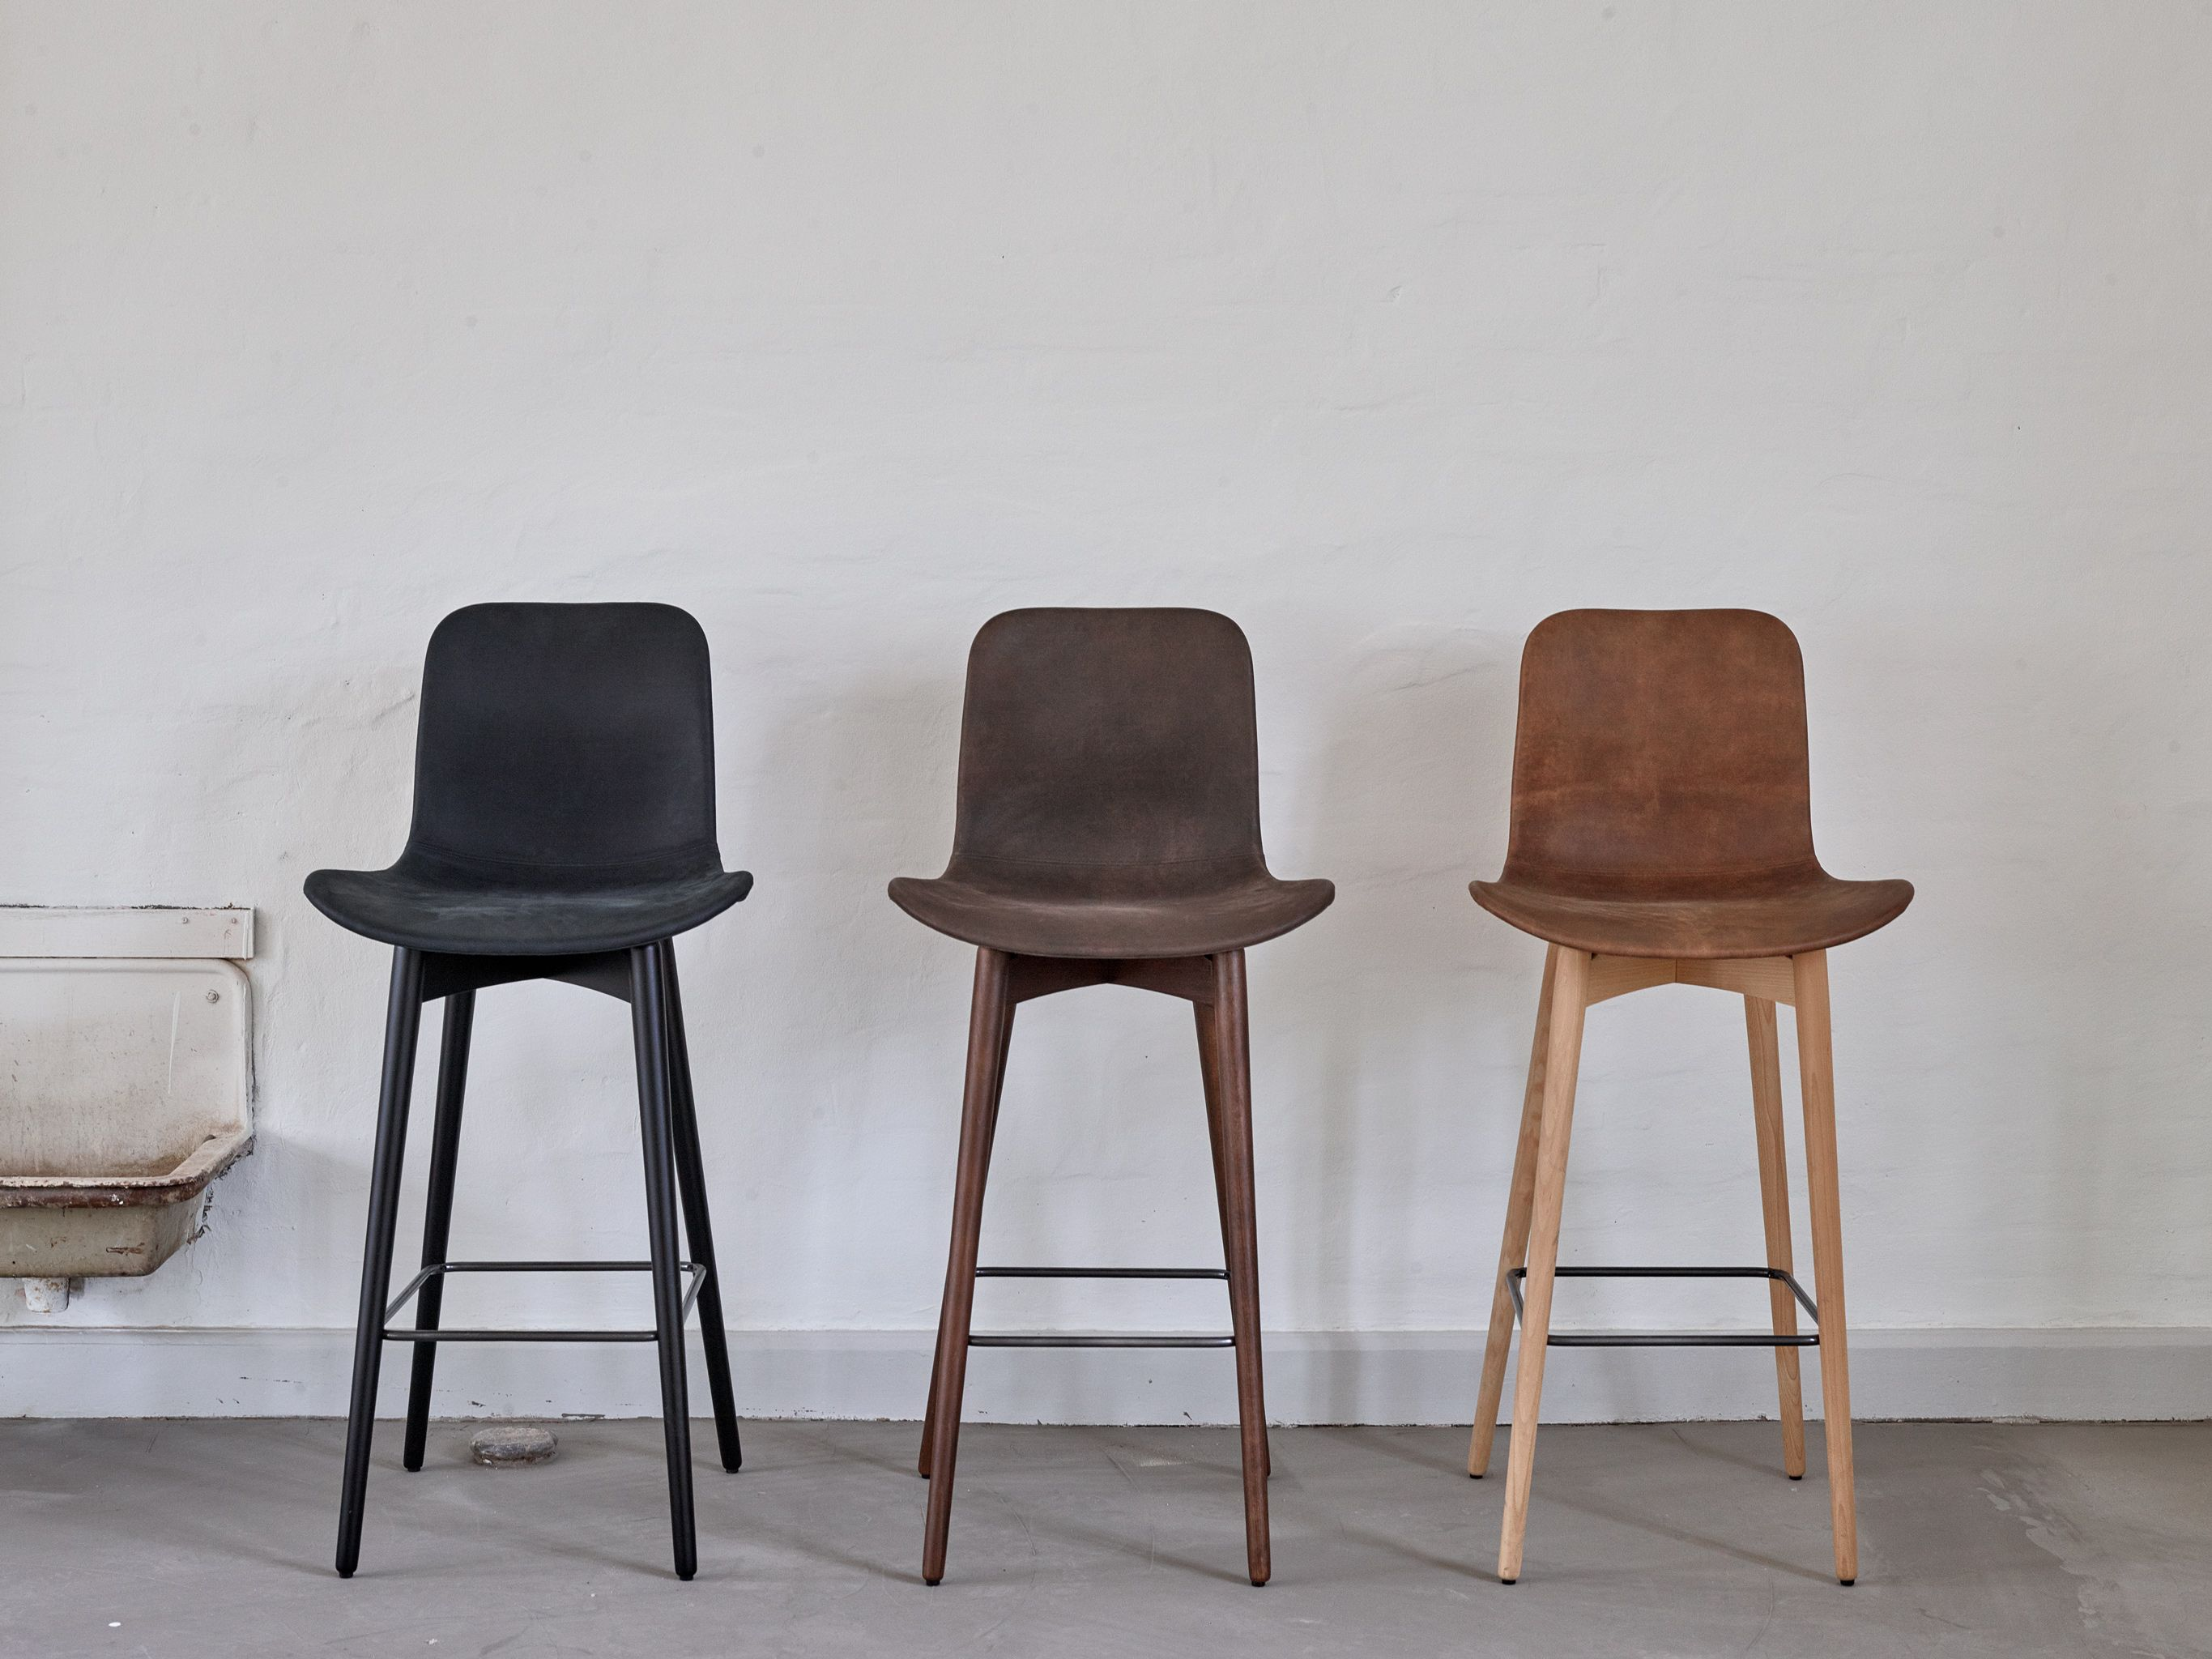 Unique Photography Stools and Chairs